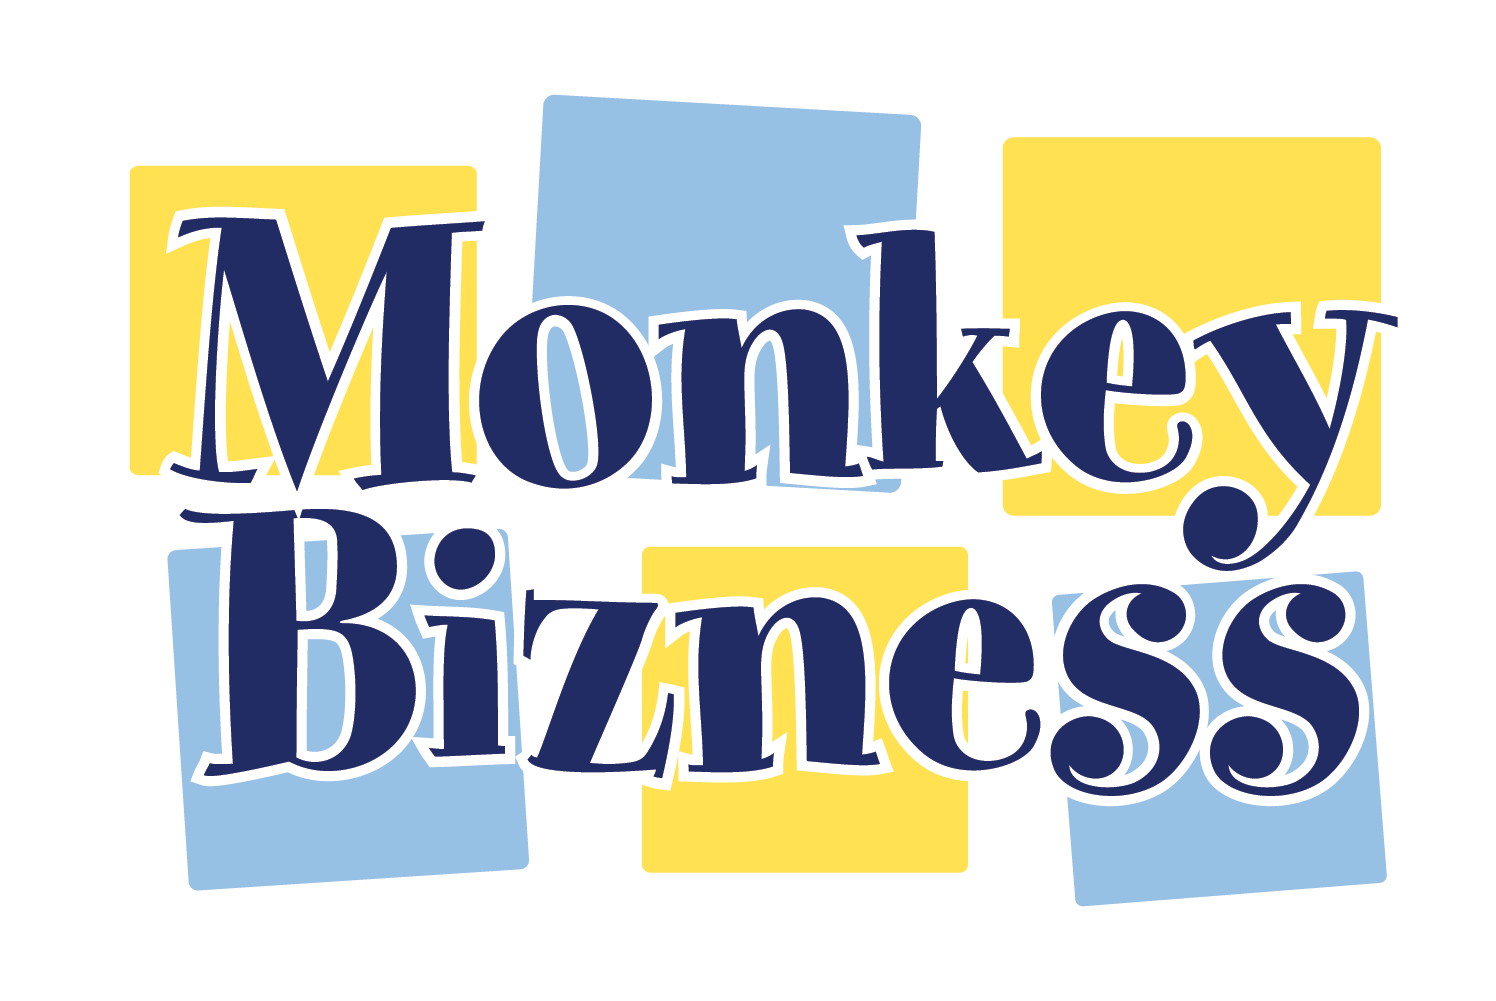 Monkey Bizness Franchsing